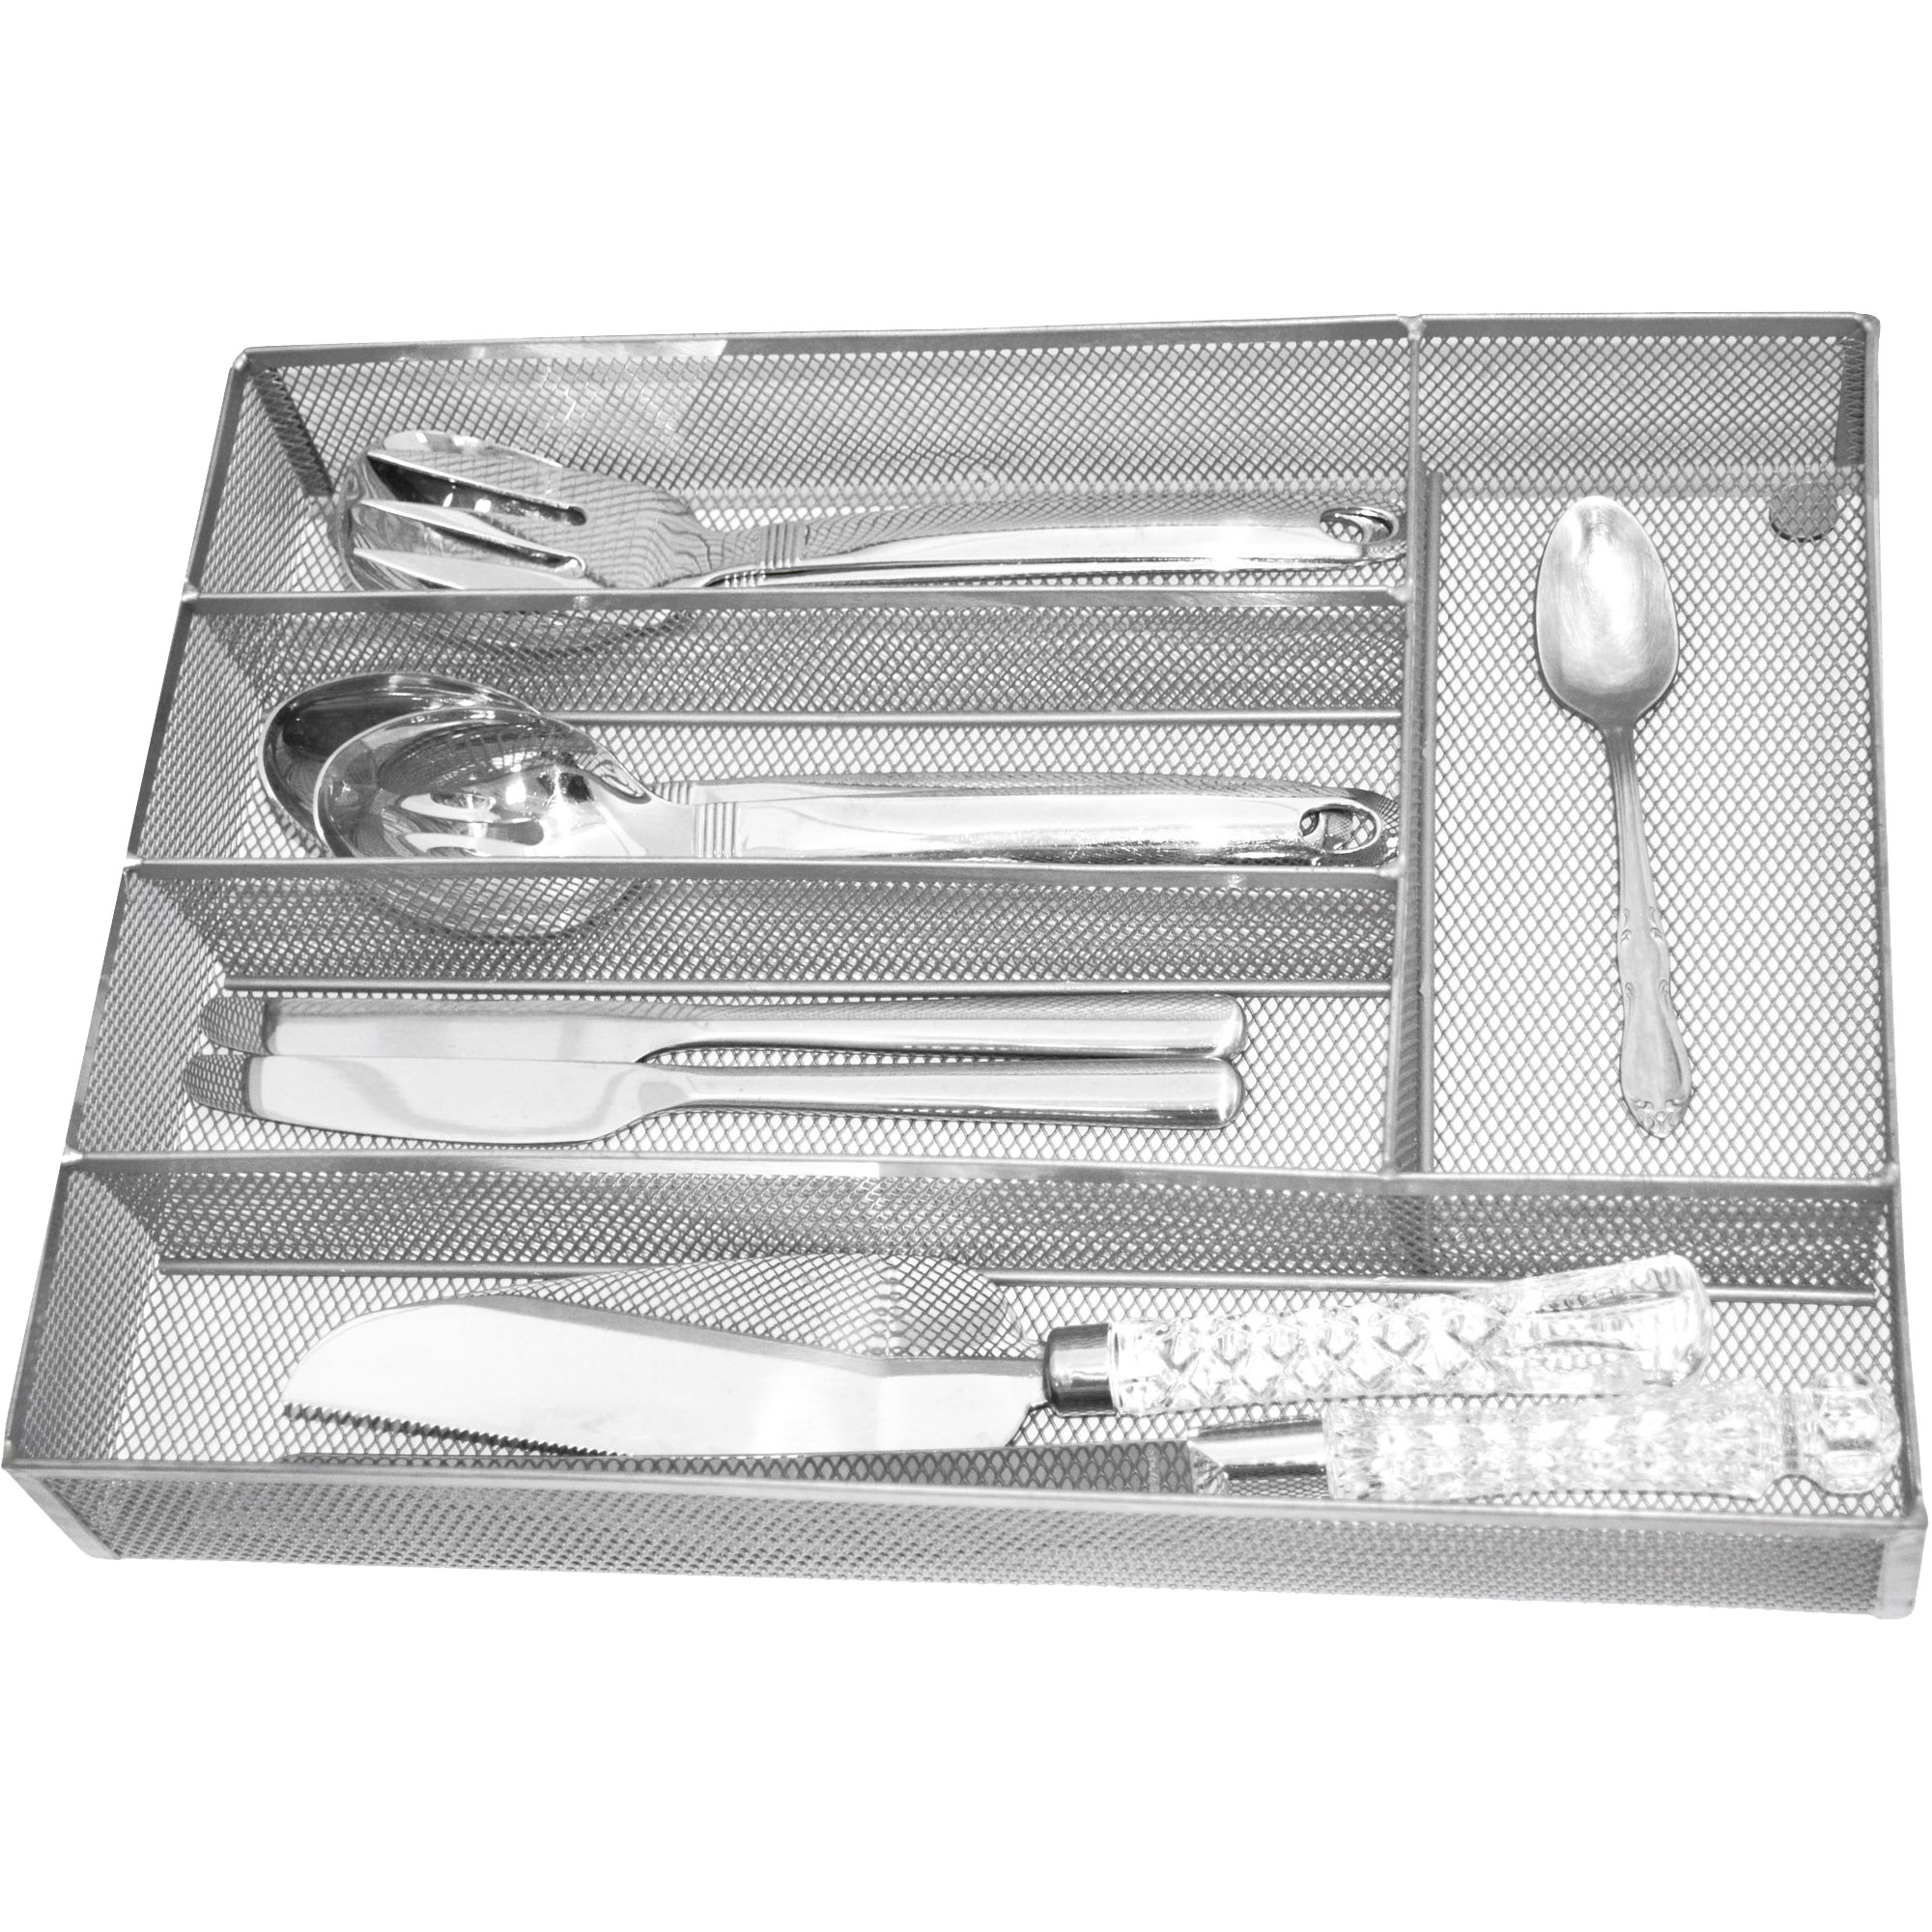 Mainstays 5-Compartment Mesh Cutlery Tray